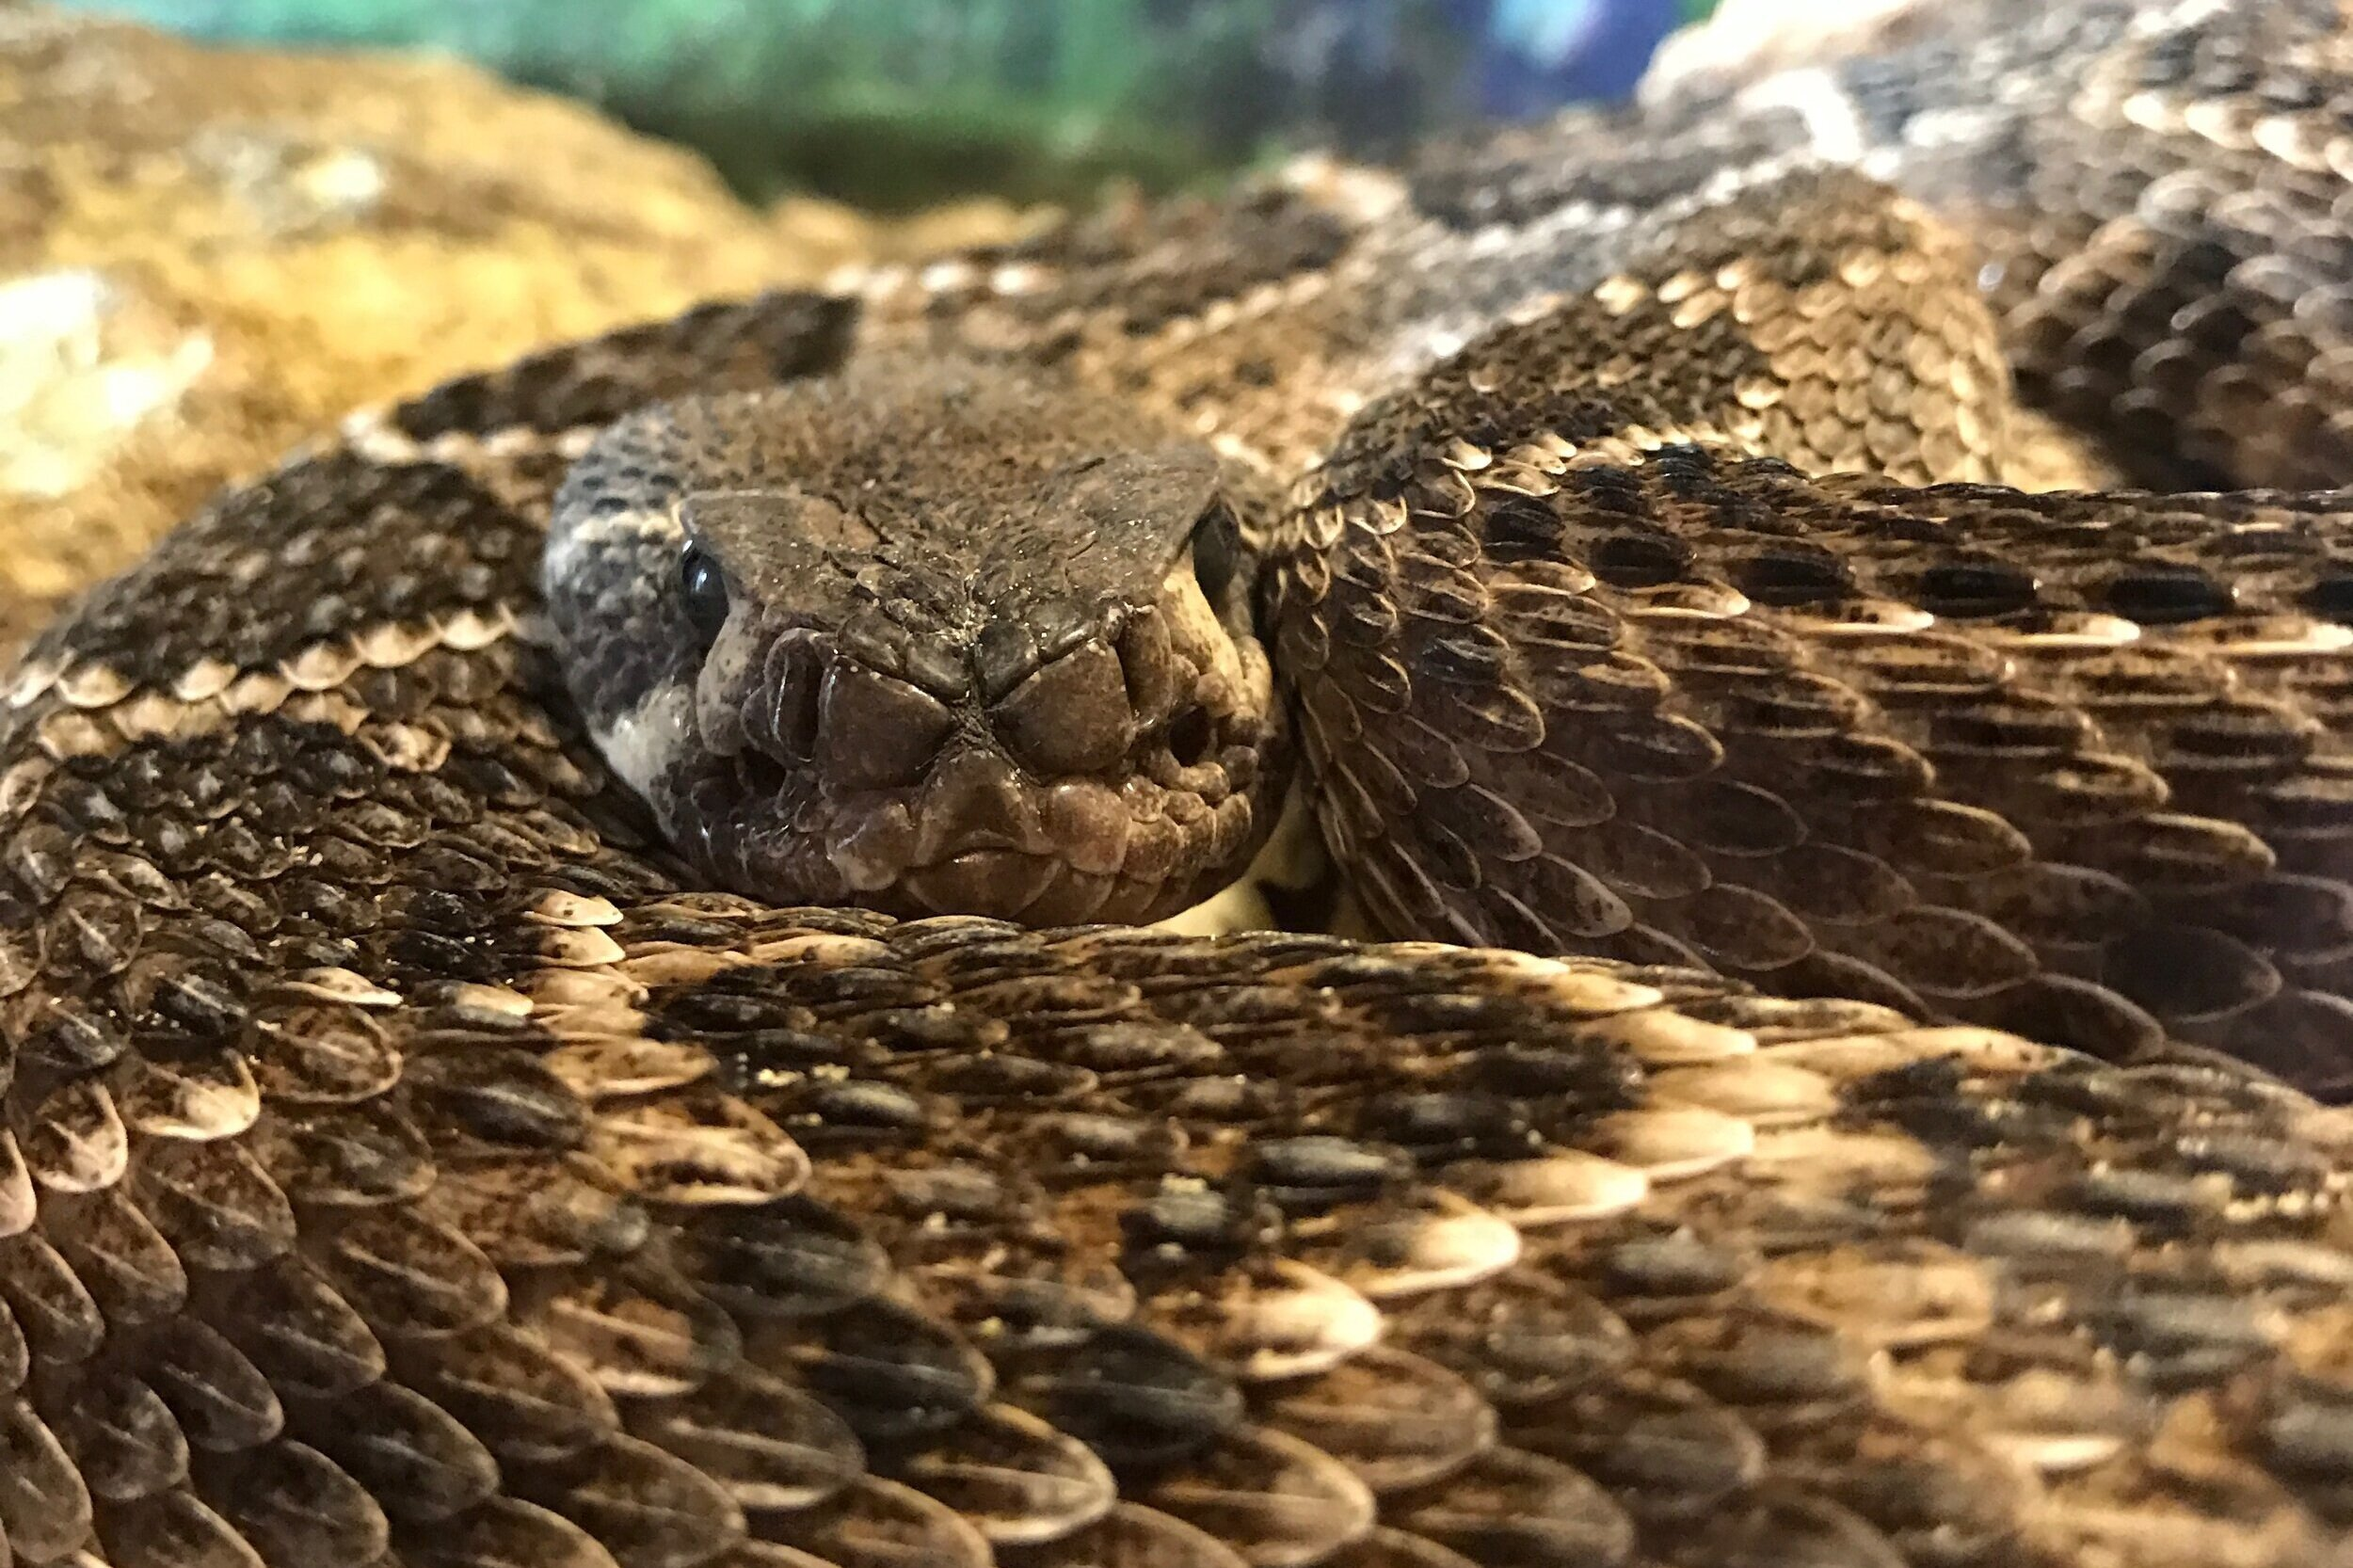 2019 Lone Star Rattlesnake Days - October 11 – October 13CLICK FOR FULL SCHEDULEExperience one of the largest rattlesnake displays available in the United States! Venom extraction demonstrations by the Kentucky Reptile Zoo and educational demonstrations by recognized experts!